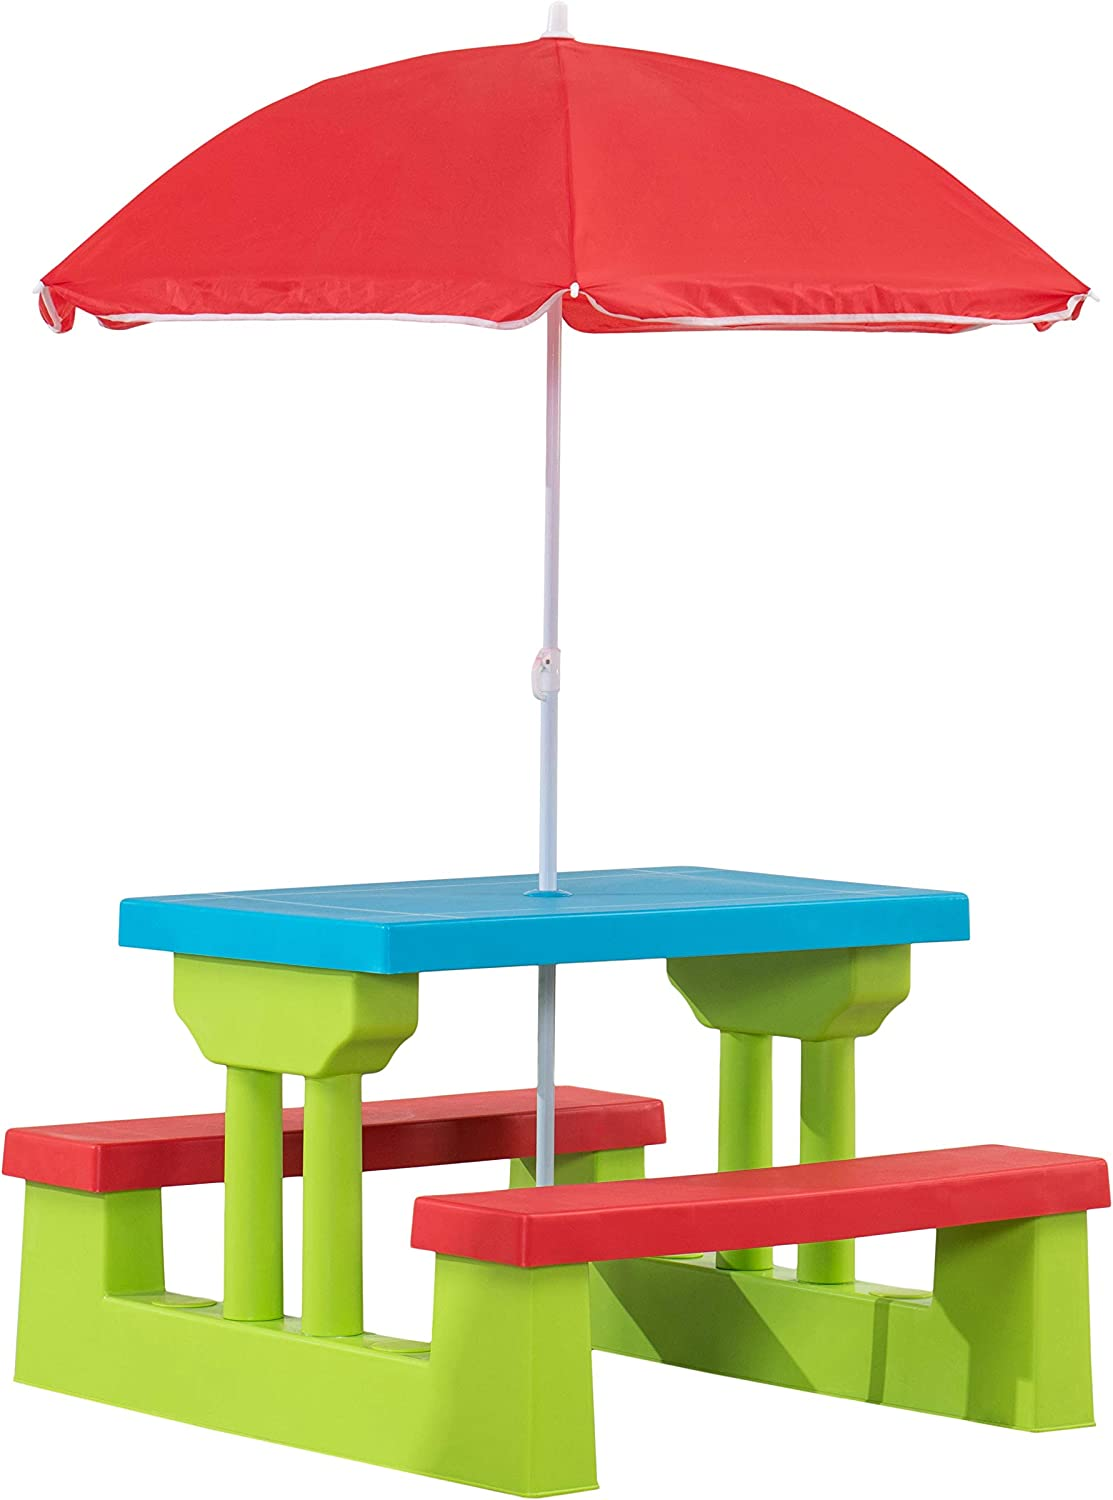 AmazonBasics Plastic Multicolored Kids Outdoor Table with Umbrella - Red / Blue / Green